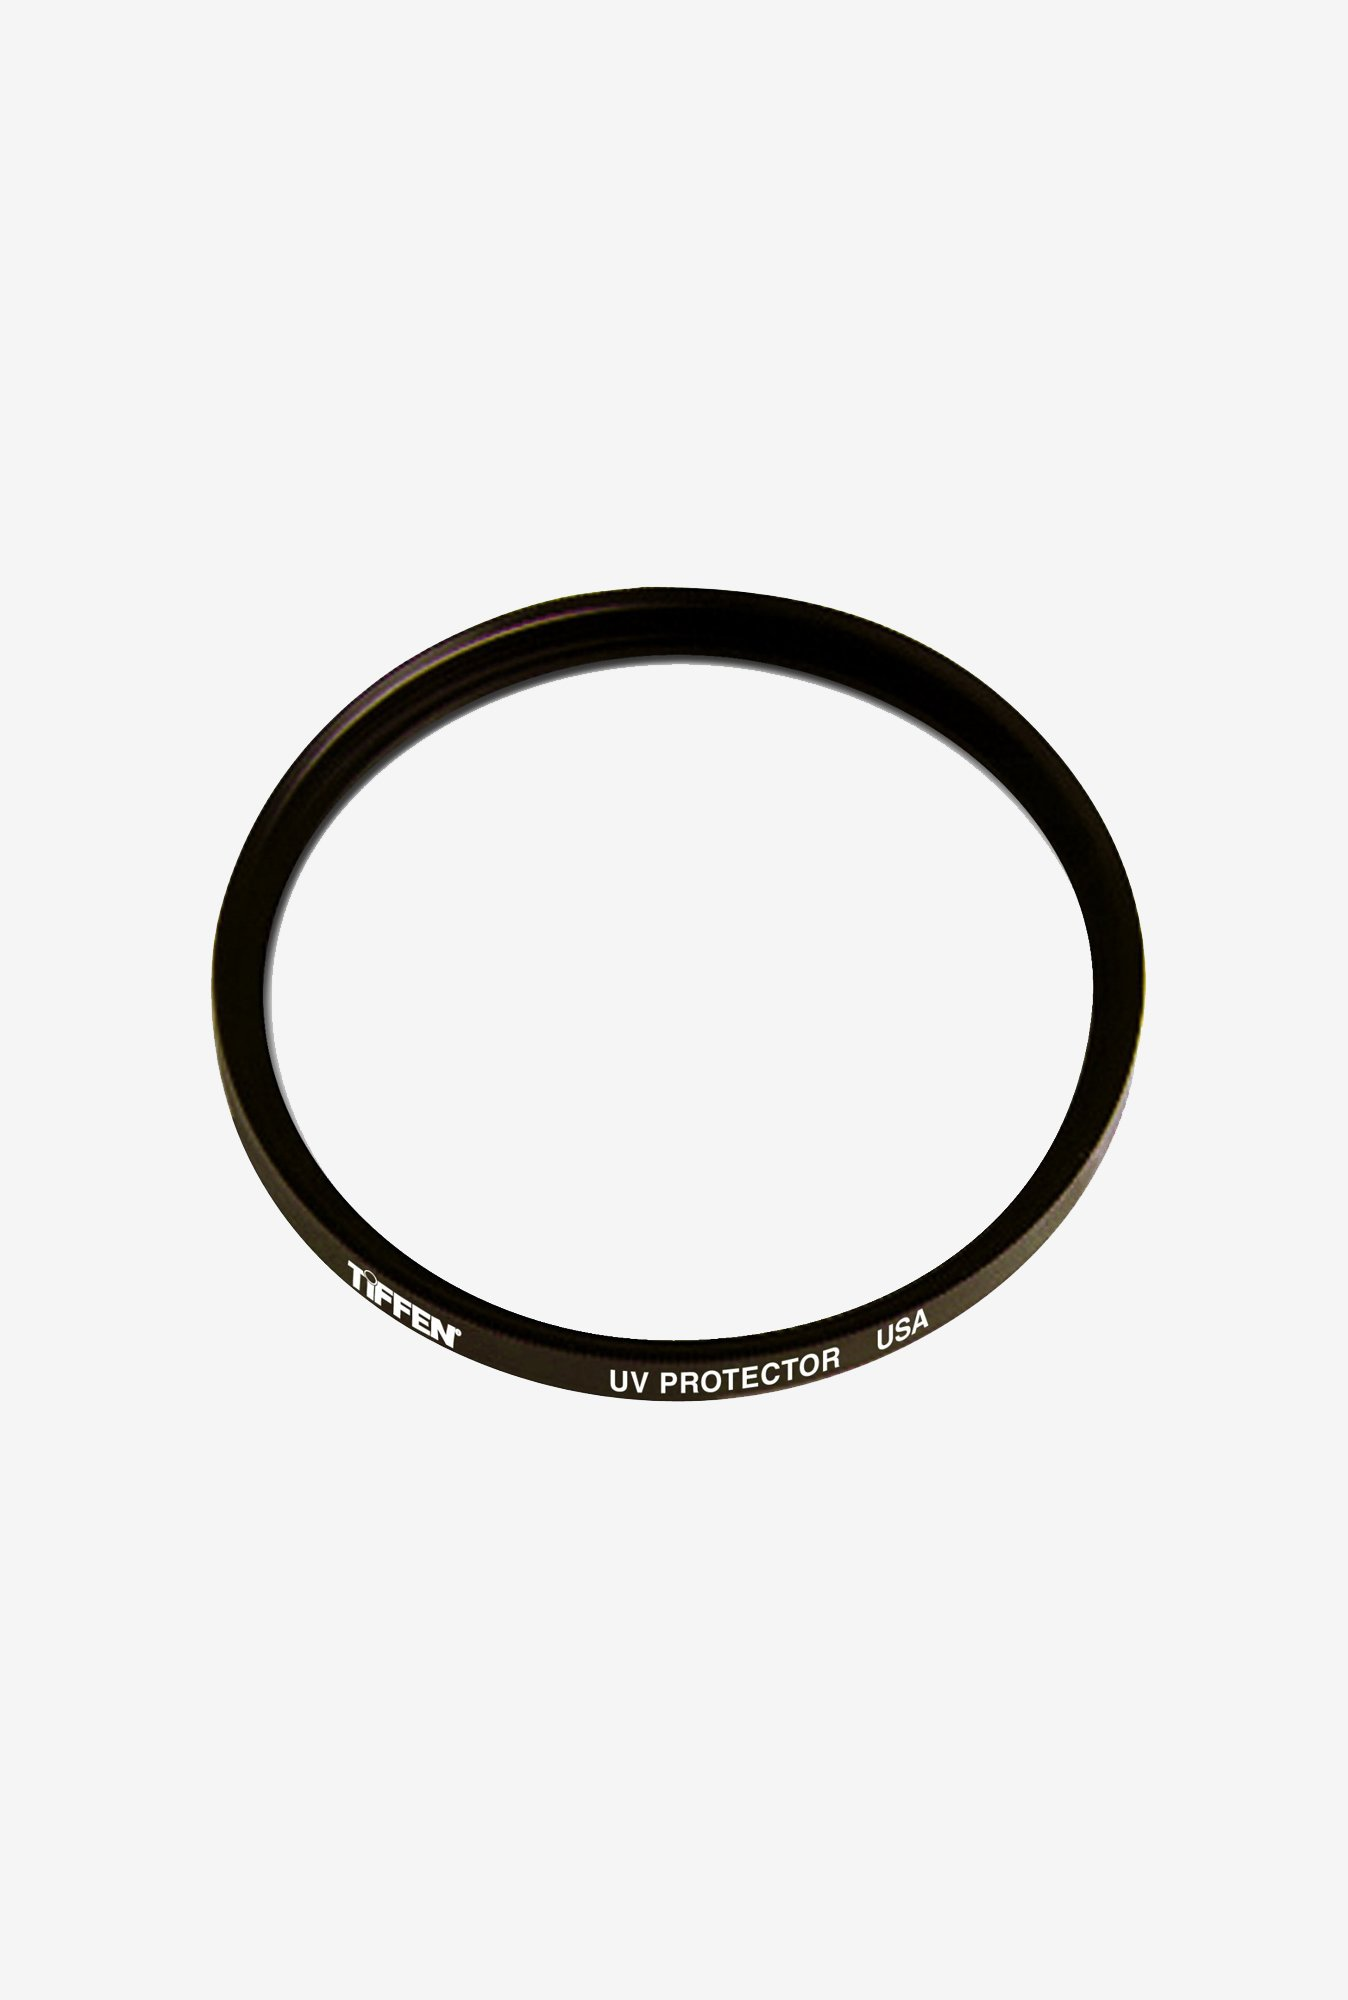 Tiffen 405UVP 40.5mm UV Protection Filter (Black)